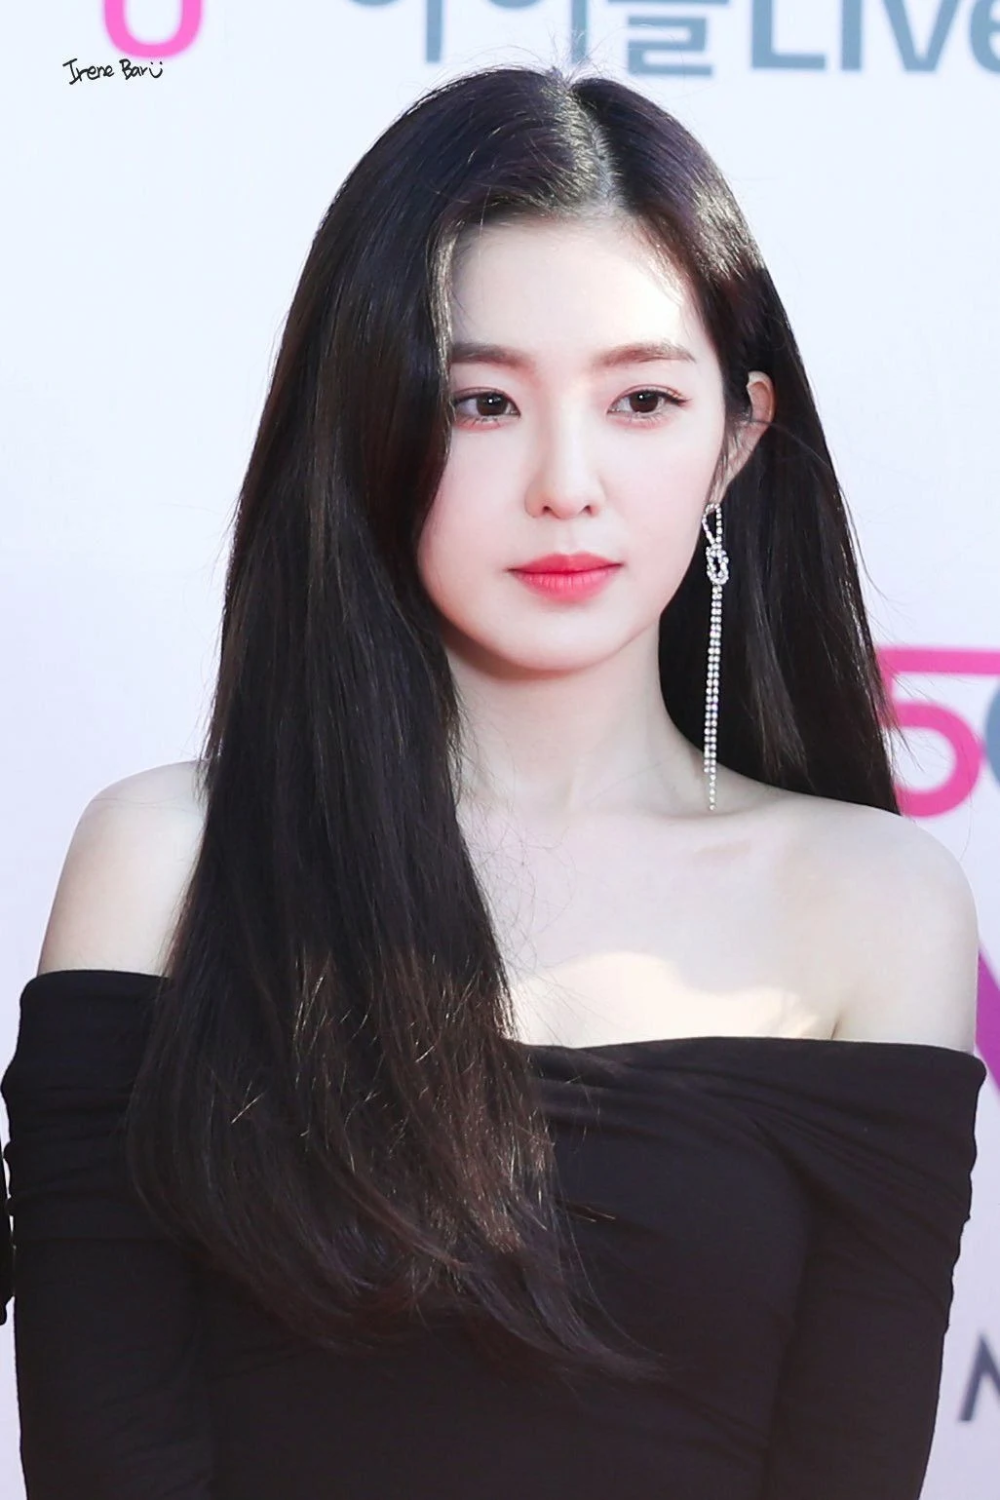 Here S A List Of Some K Pop Idols Who Got Involved In Dating Rumors For Some Of The Most Ridiculous Reasons Red Velvet Irene Red Velvet Velvet